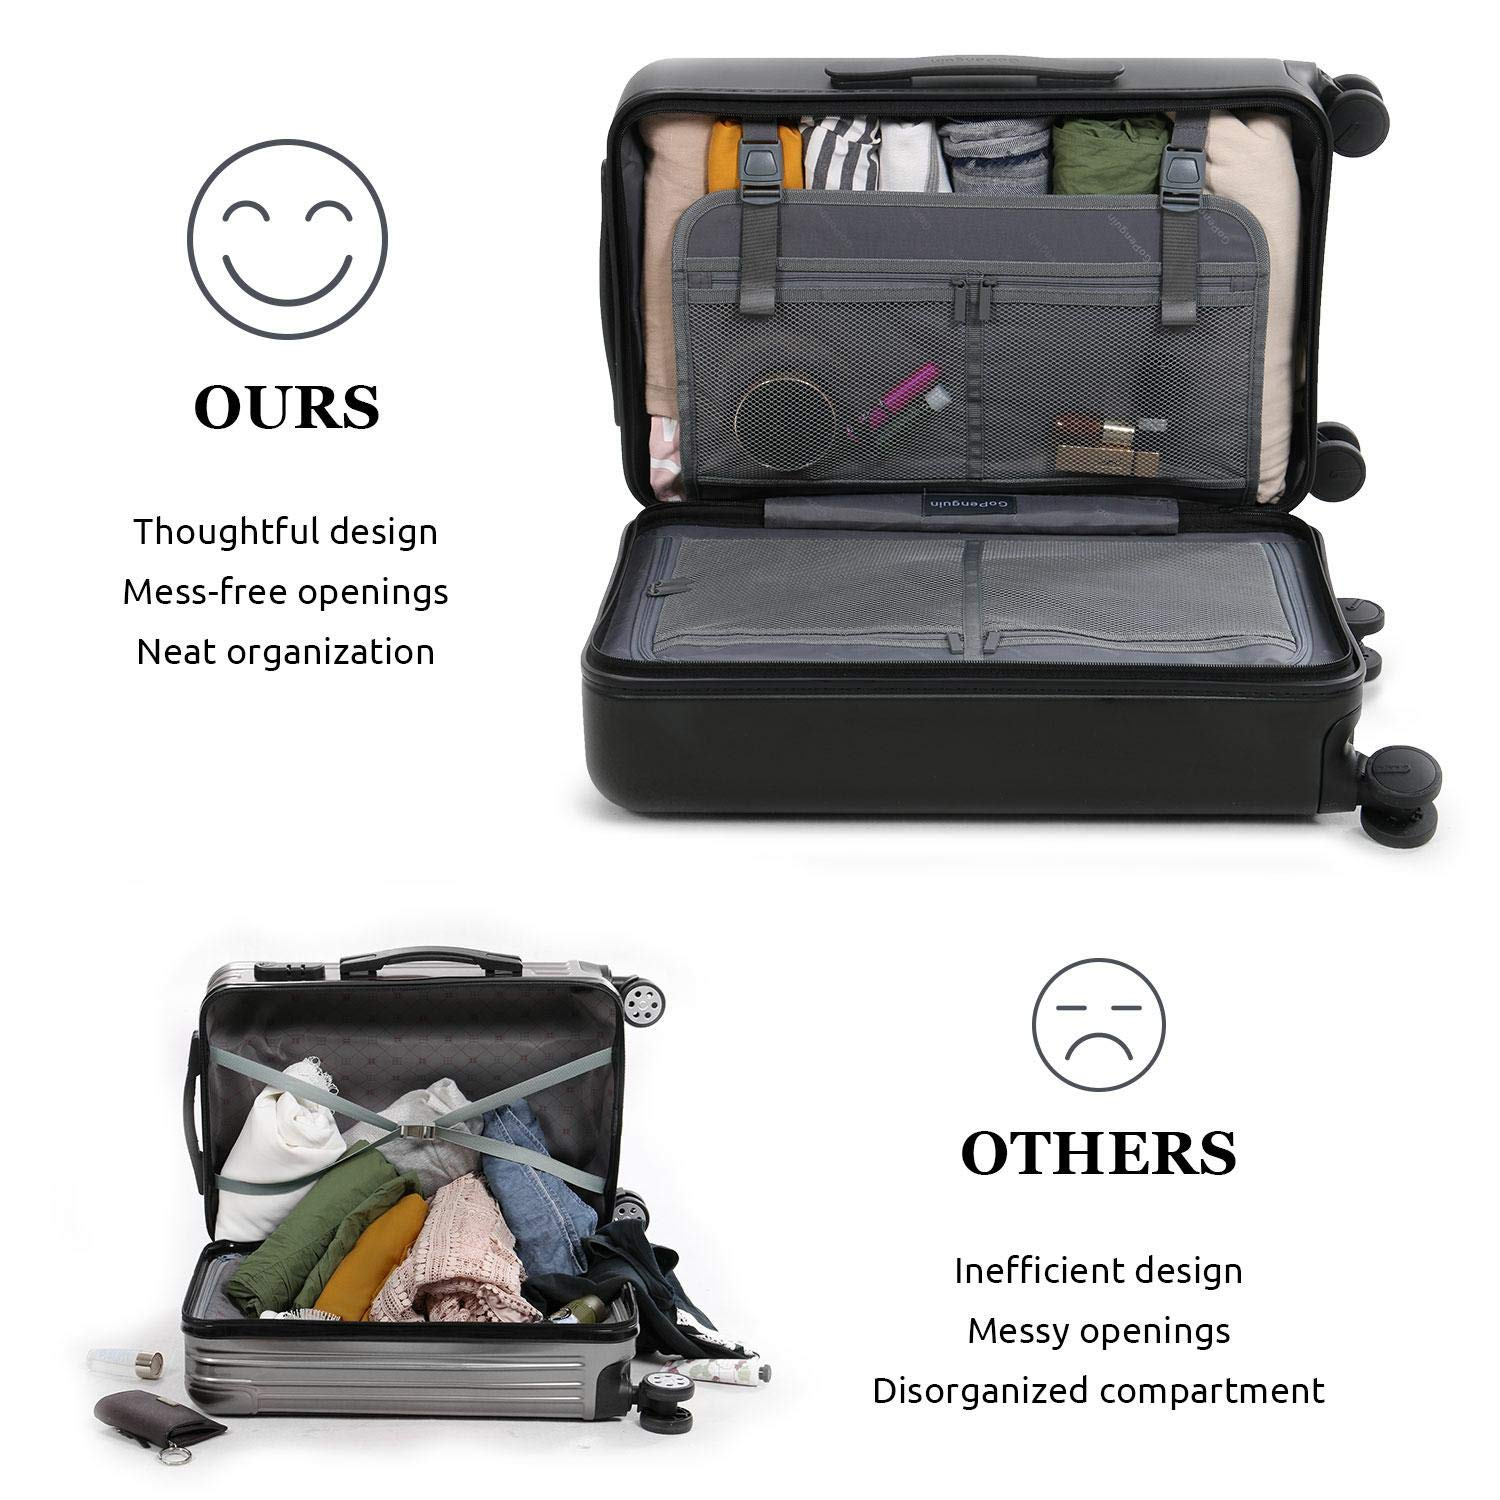 GoPenguin Carry-on Suitcase Interior